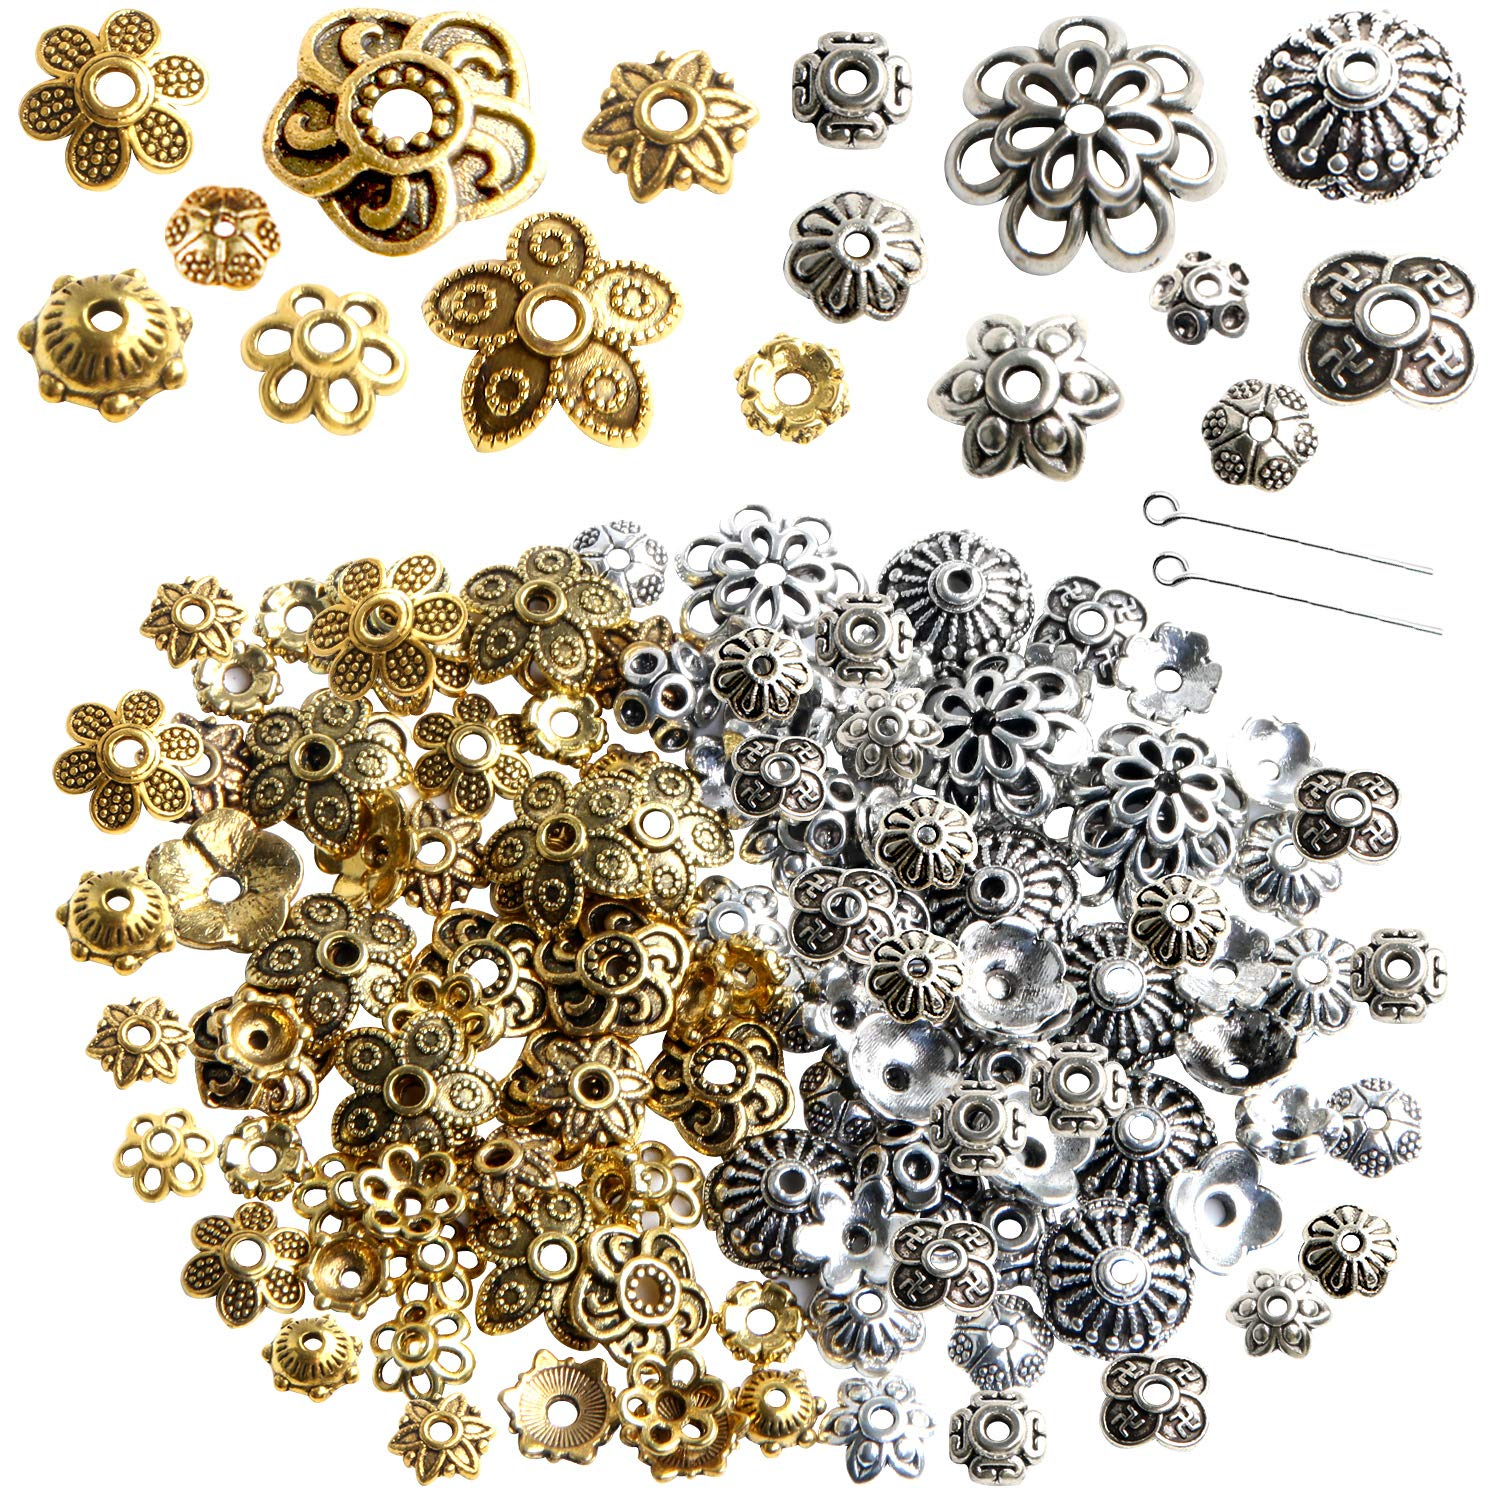 160Pcs Mixed Metal Bead Caps Spacer Flower Beads for DIY Jewelry Making Antique Gold Silver